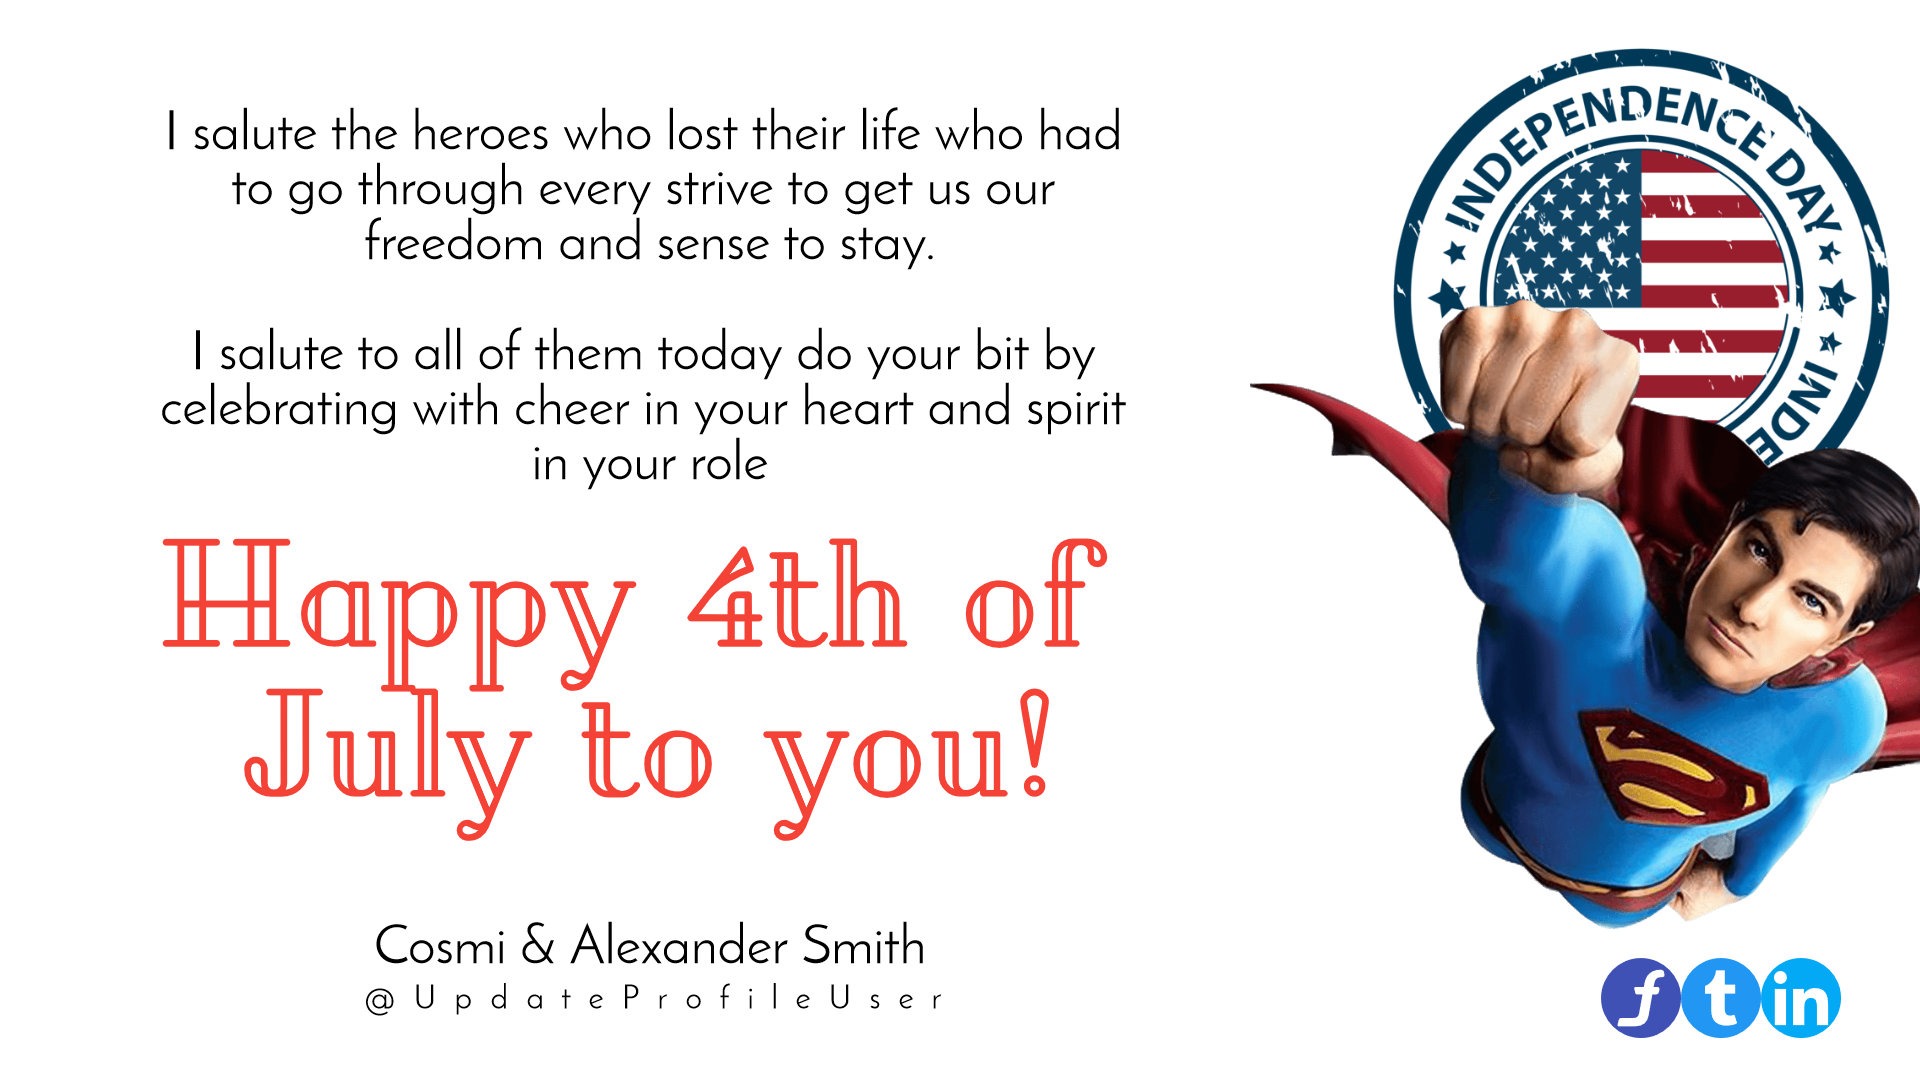 4th of July superman annyversary Design  Template